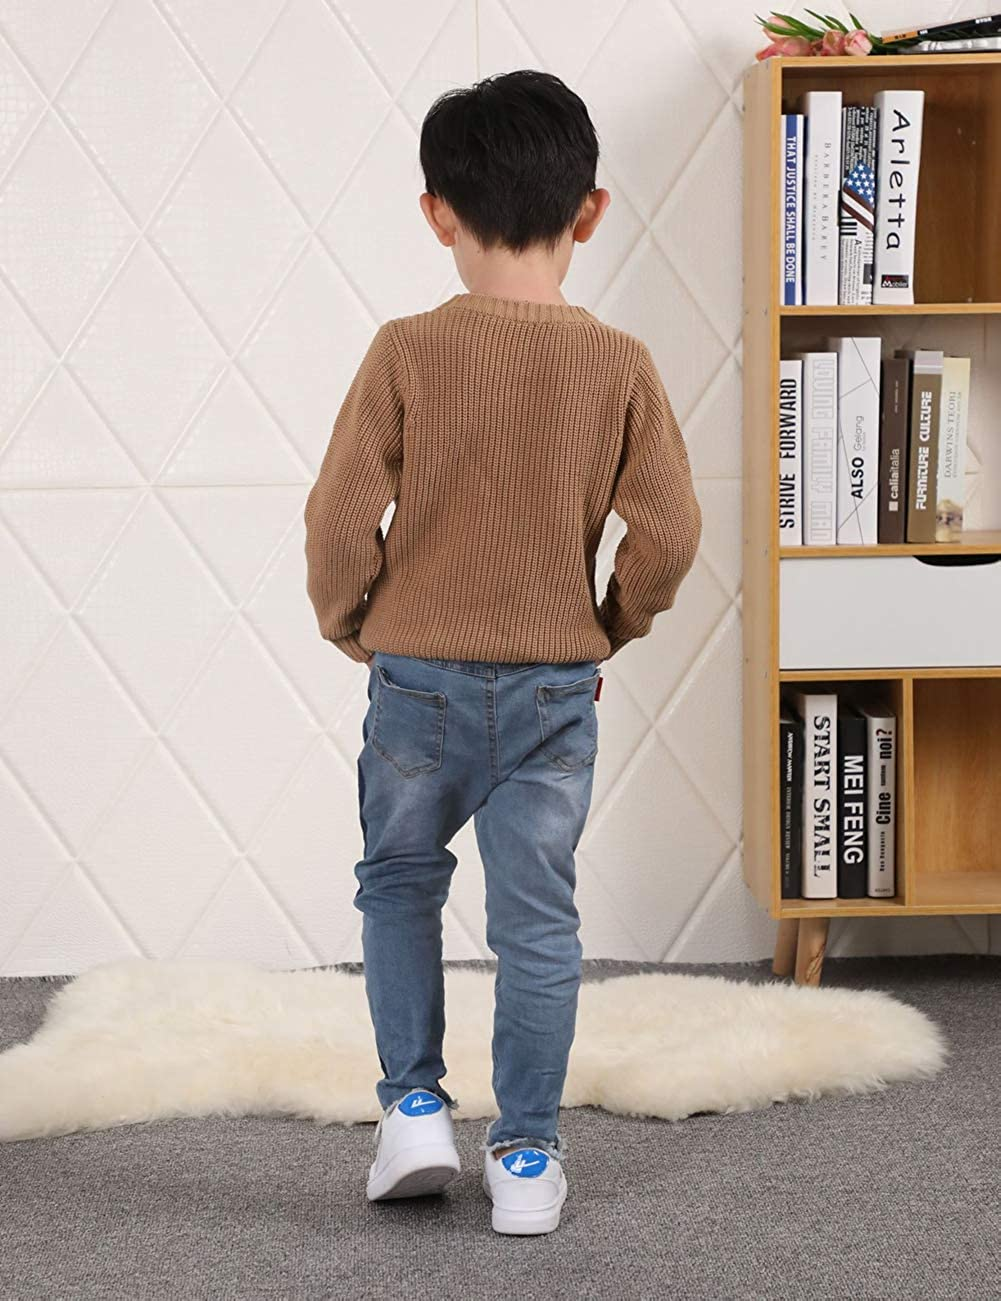 Kimjun Toddler Baby Pullover Sweater for Boy Girl Loose Cable Knit Sweatshirt 1-7t